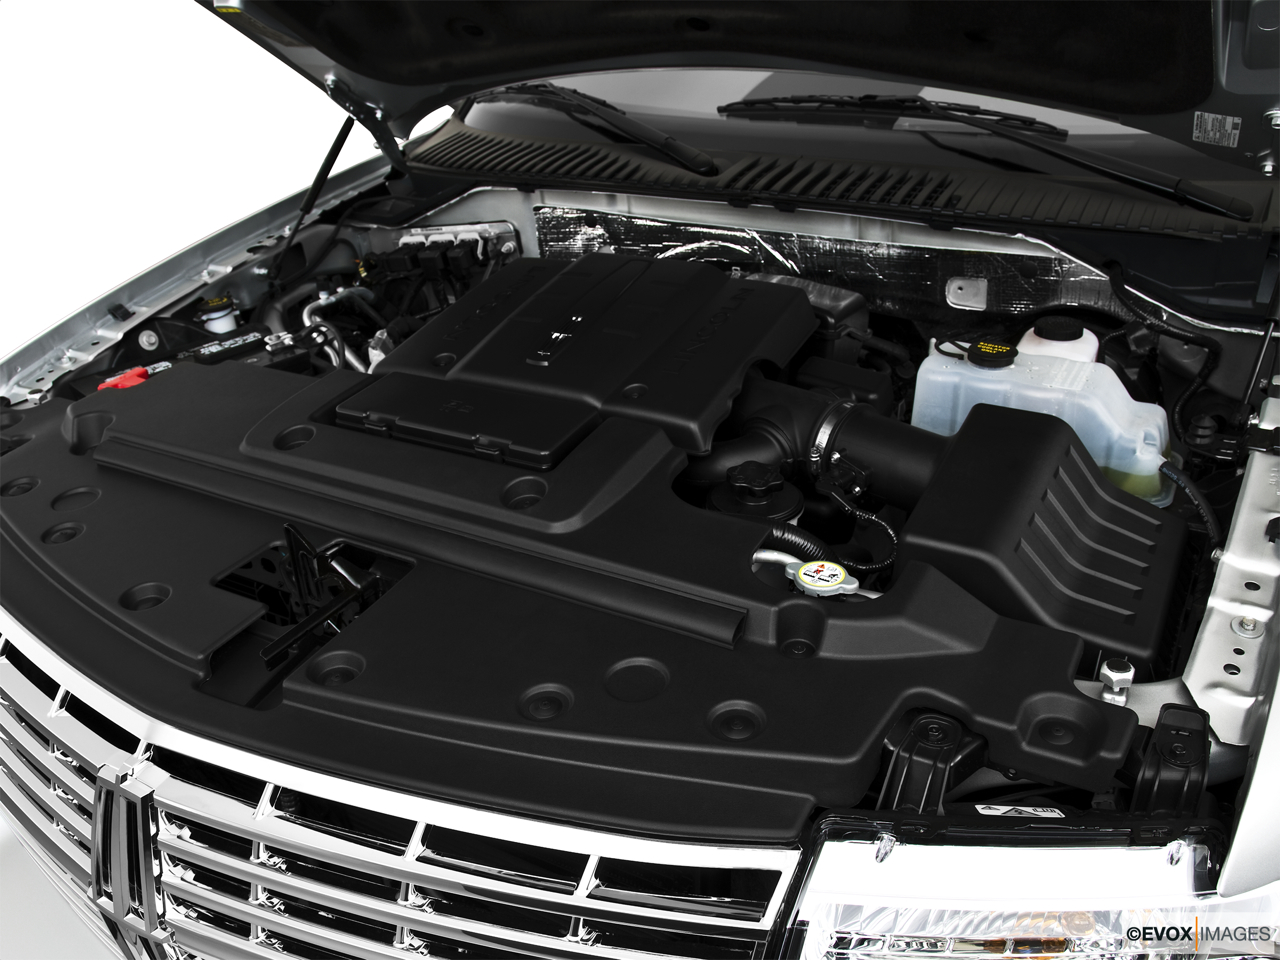 2010 Lincoln Navigator Base Engine.